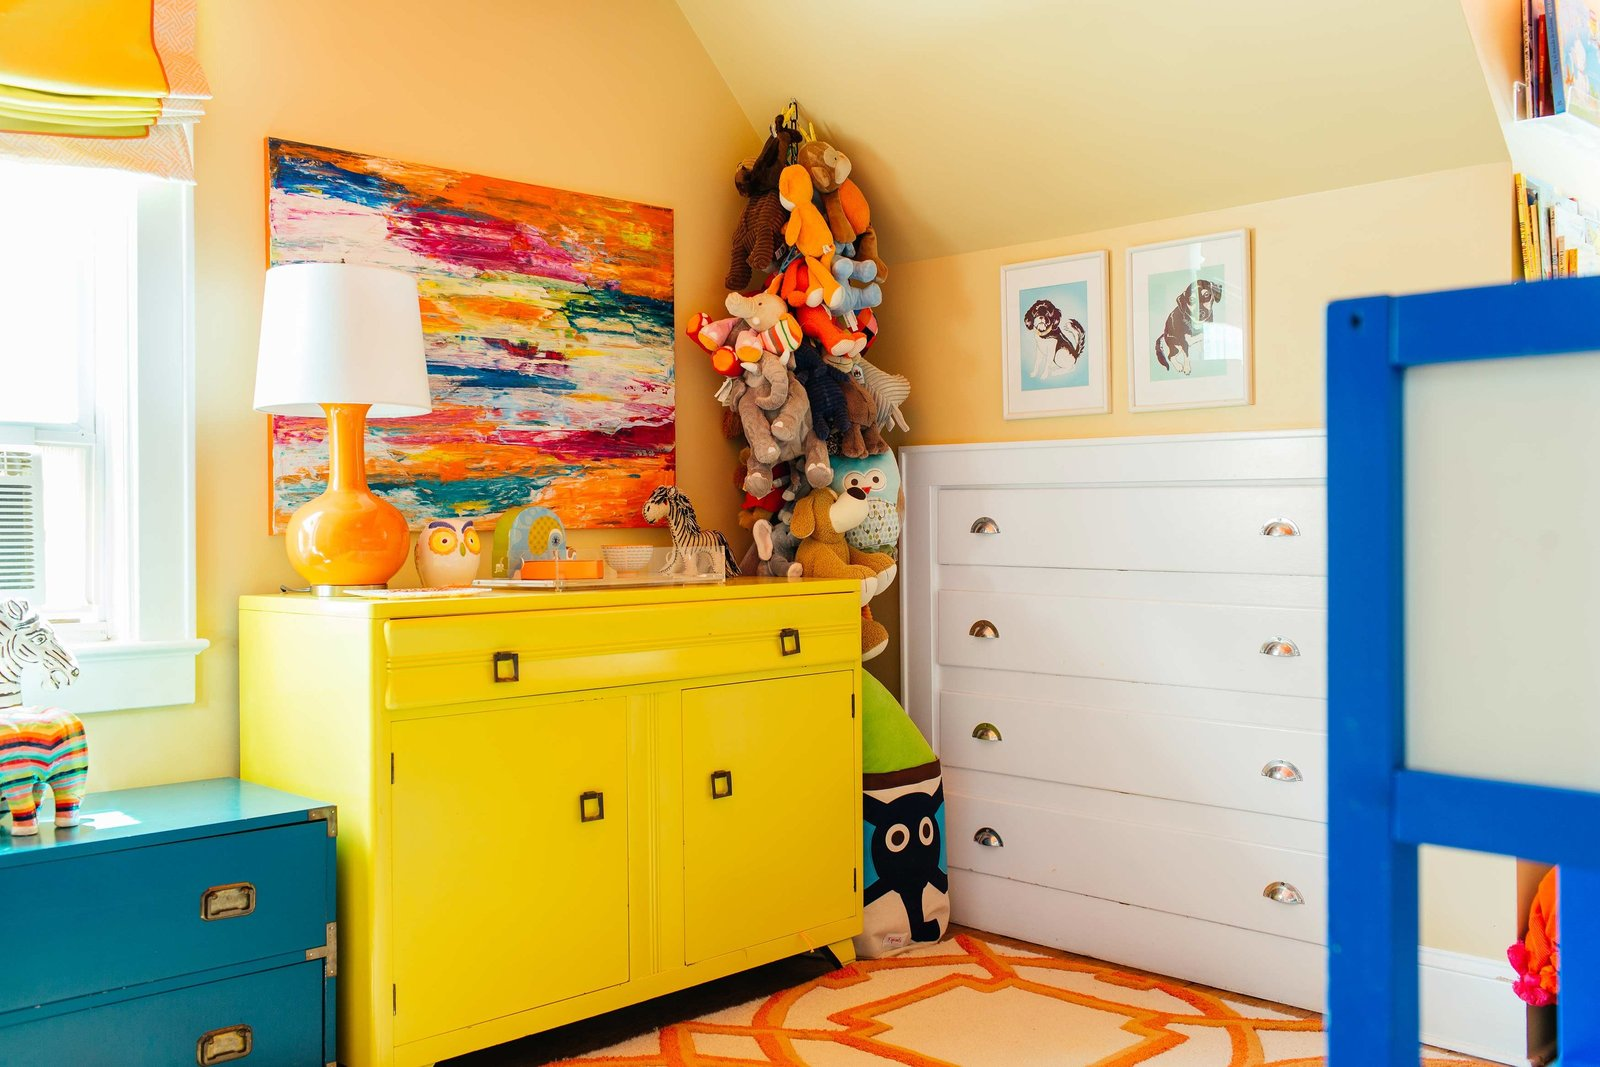 A boys bedroom with a yellow dresser and built in white dresser.